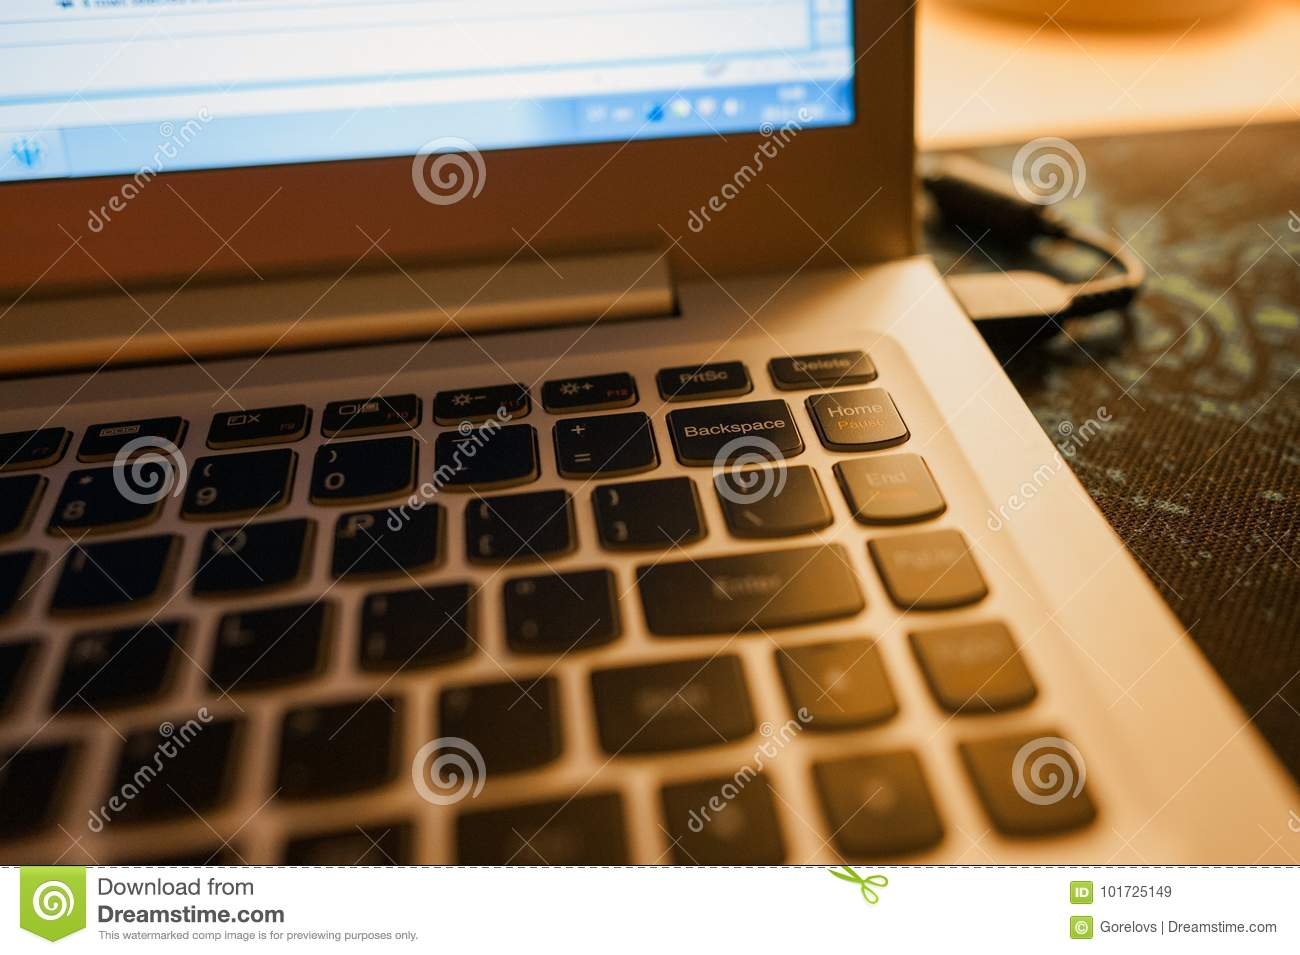 Close-up of laptop keyboard with focus on Backspace button and highlighted with warm evening light